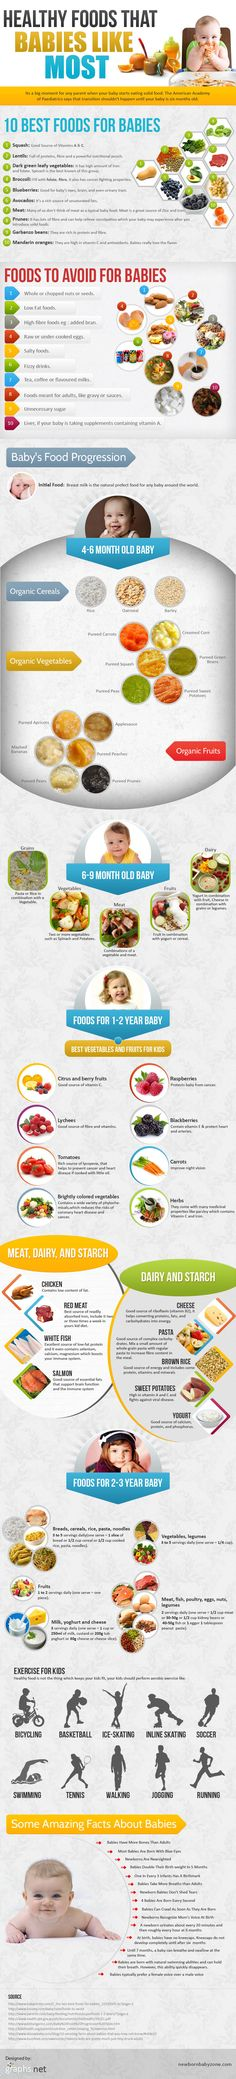 Healthy foods according to age